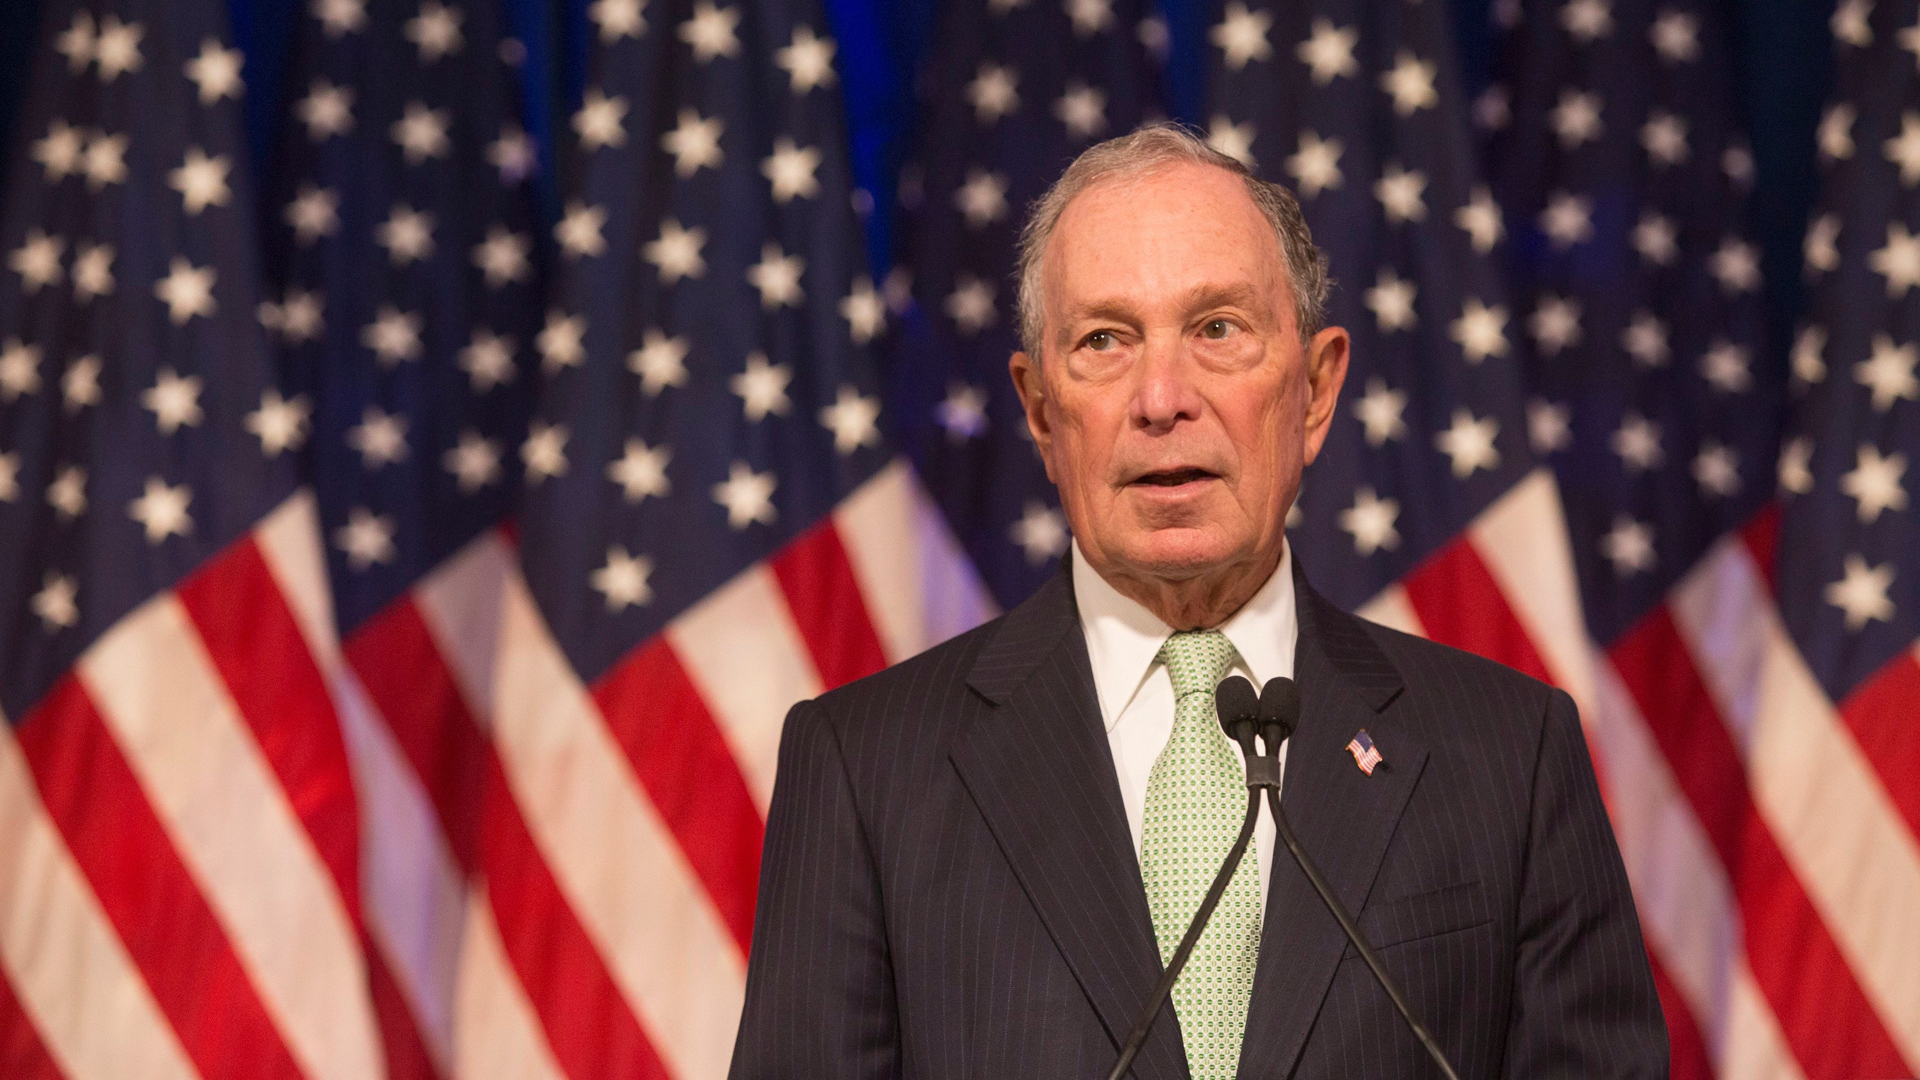 Bloomberg and 7 Millionaires Going on an Election Spending Blitz